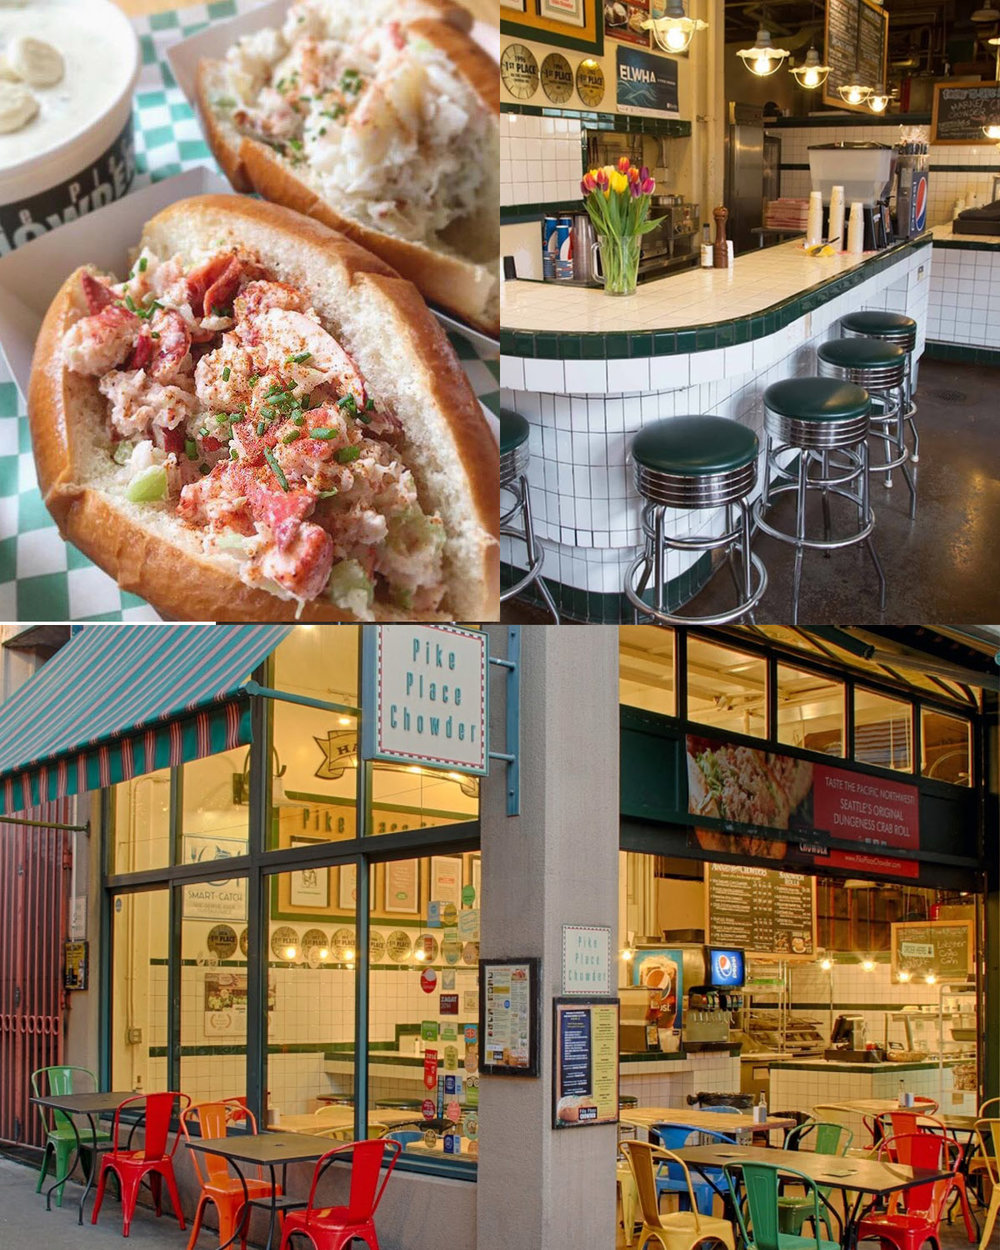 Pike Place Chowder - Seattle's Award-Winning, Hall-of-Fame chowder cafés named America's #1 & Seattle's Best, serving 8 varieties daily.